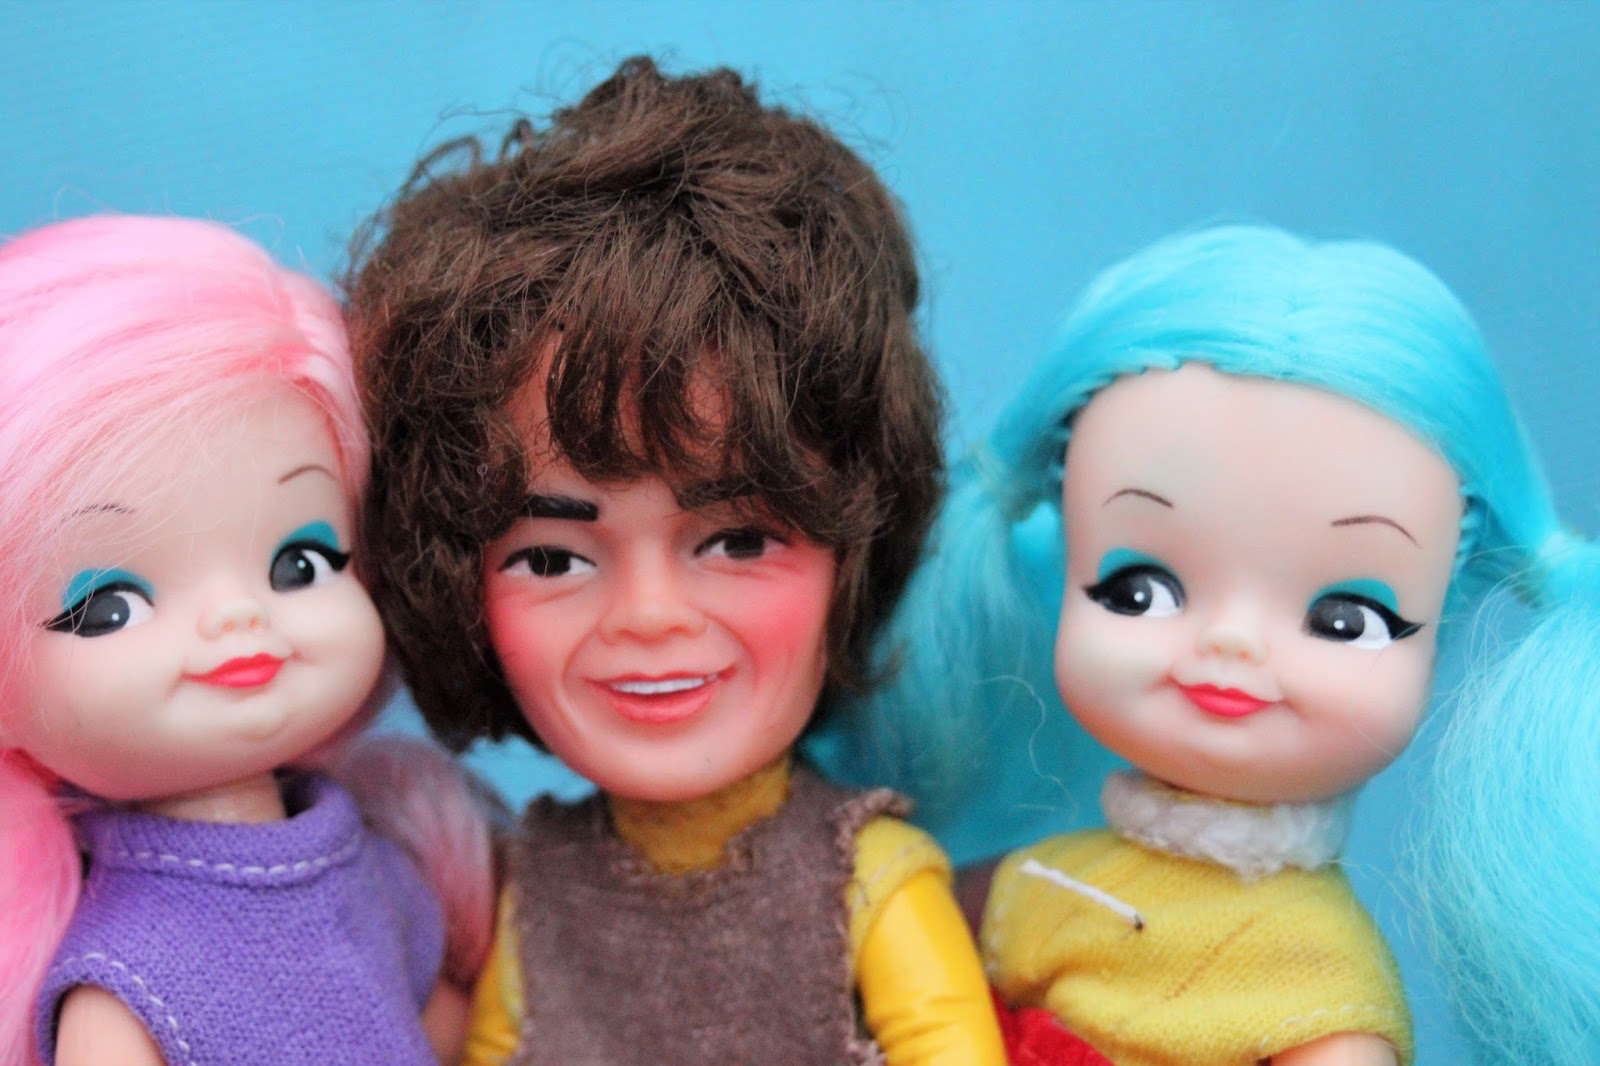 Are not land of misfit toys characters 259